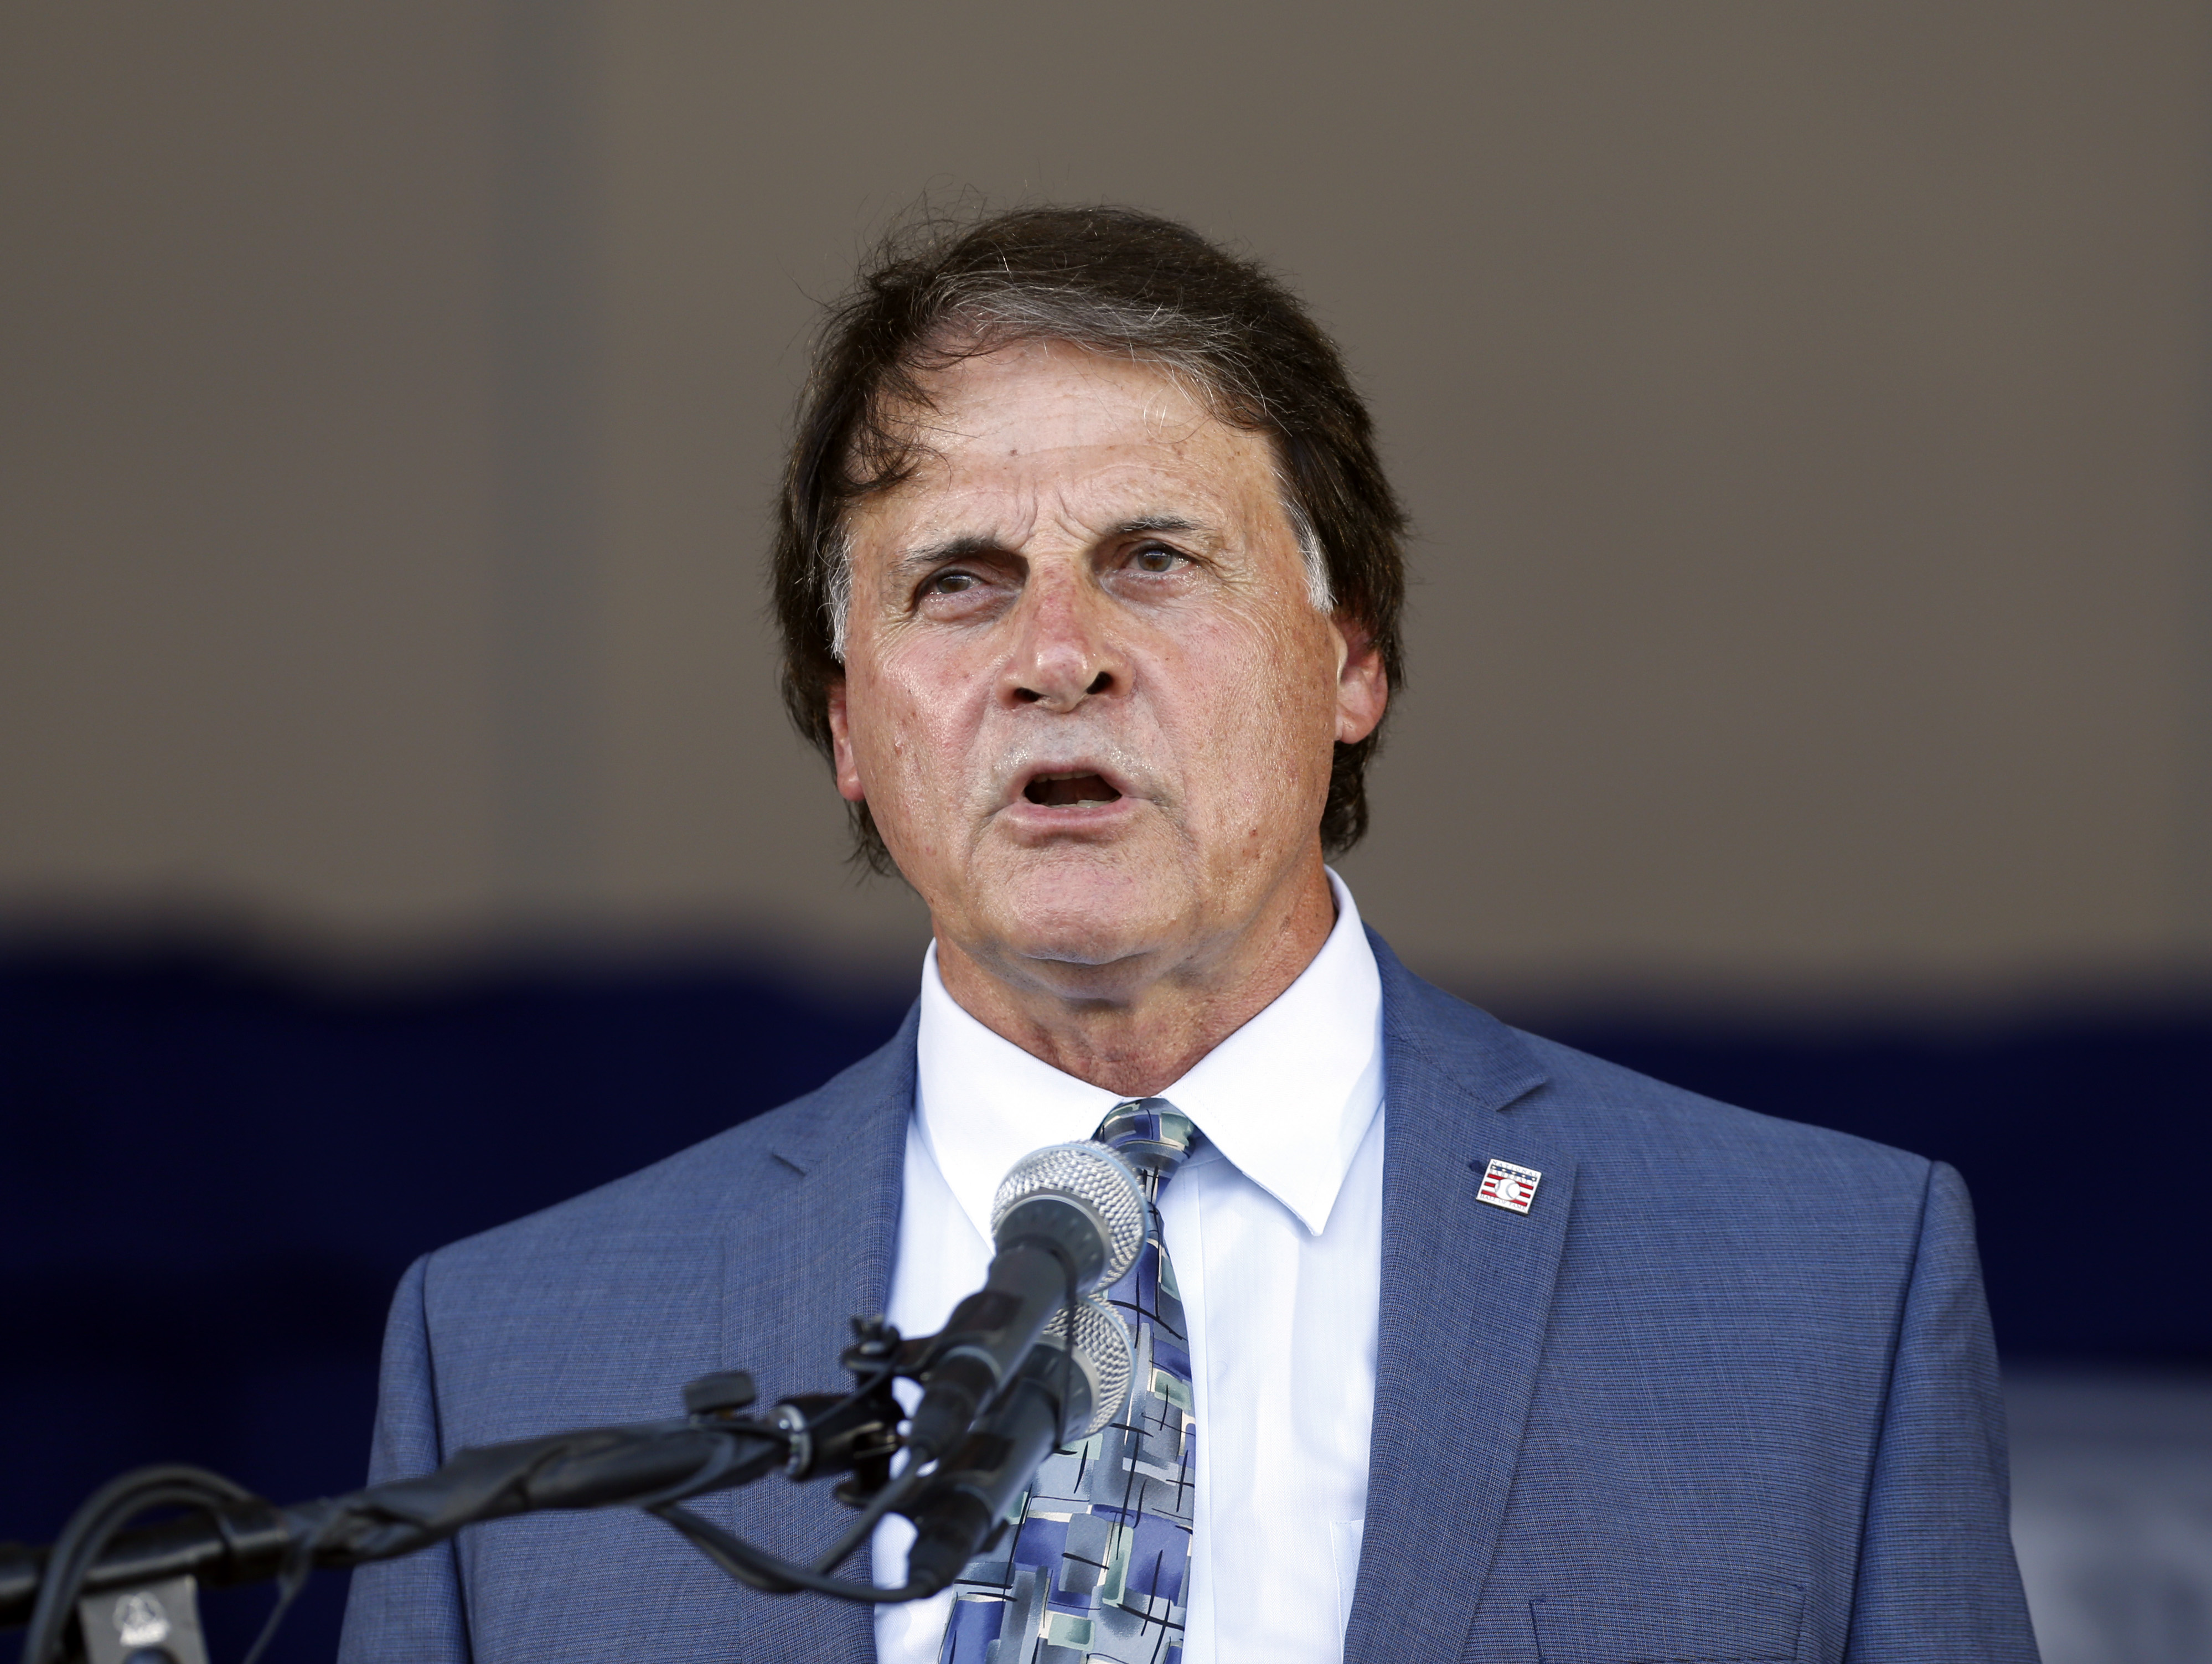 Hall of Famer Tony La Russa is once again manager of the White Sox.